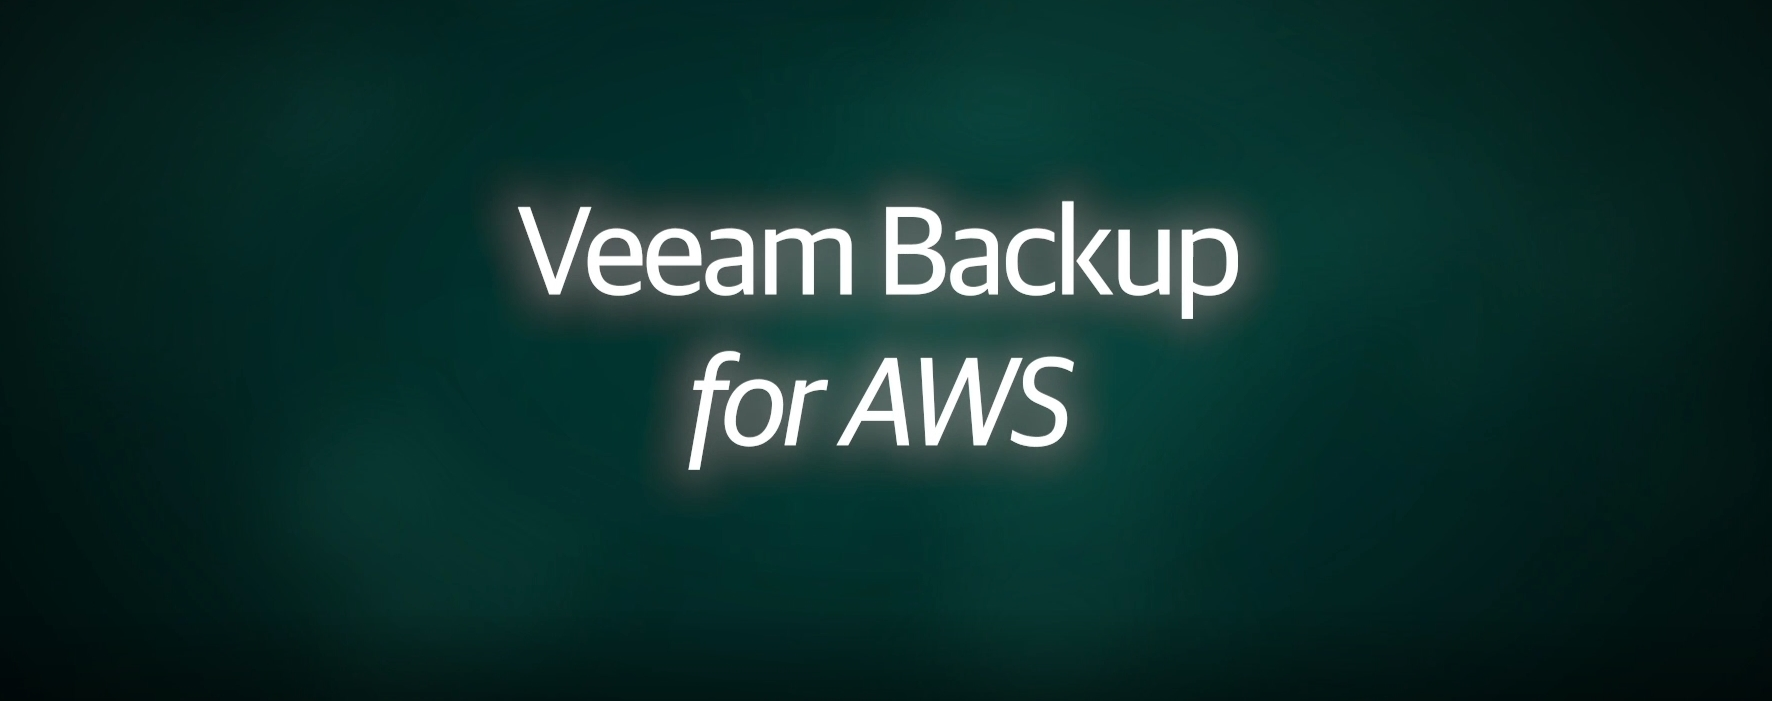 Veeam Backup for AWS — Overview demo